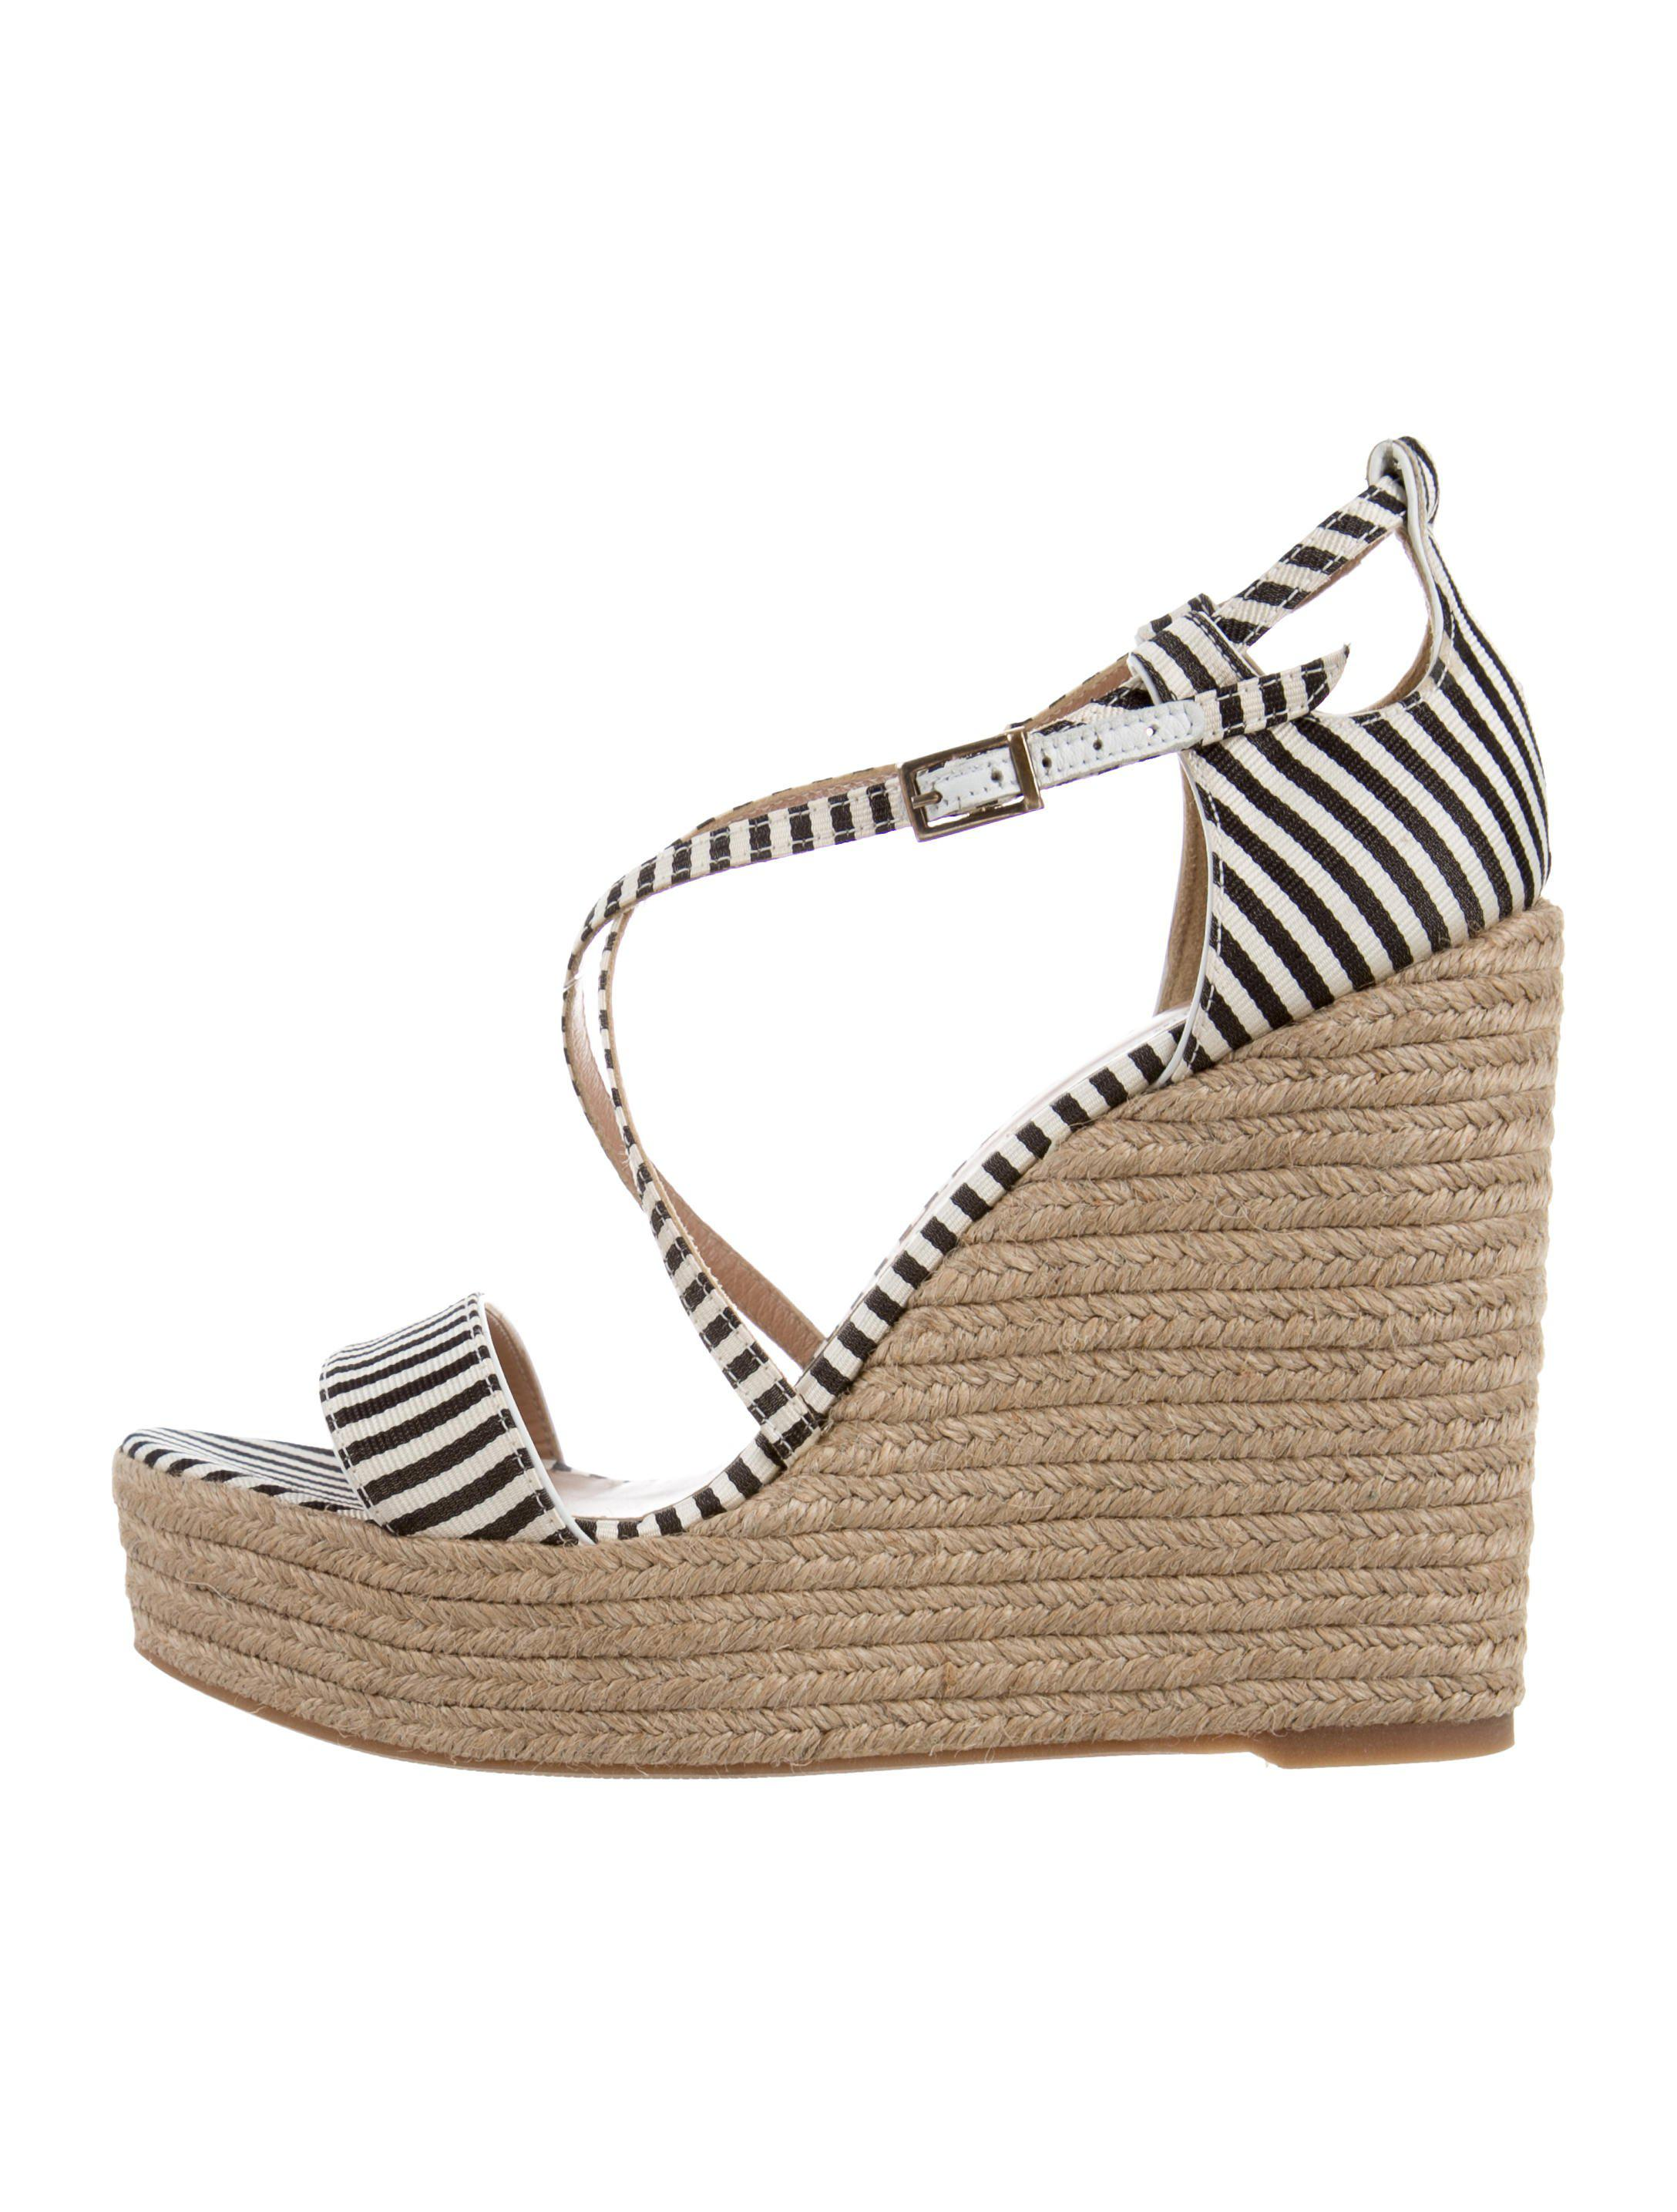 discount new Tabitha Simmons Striped Espadrille Wedges classic for sale cheap wholesale price cost online free shipping get to buy Jq6dOFMuL